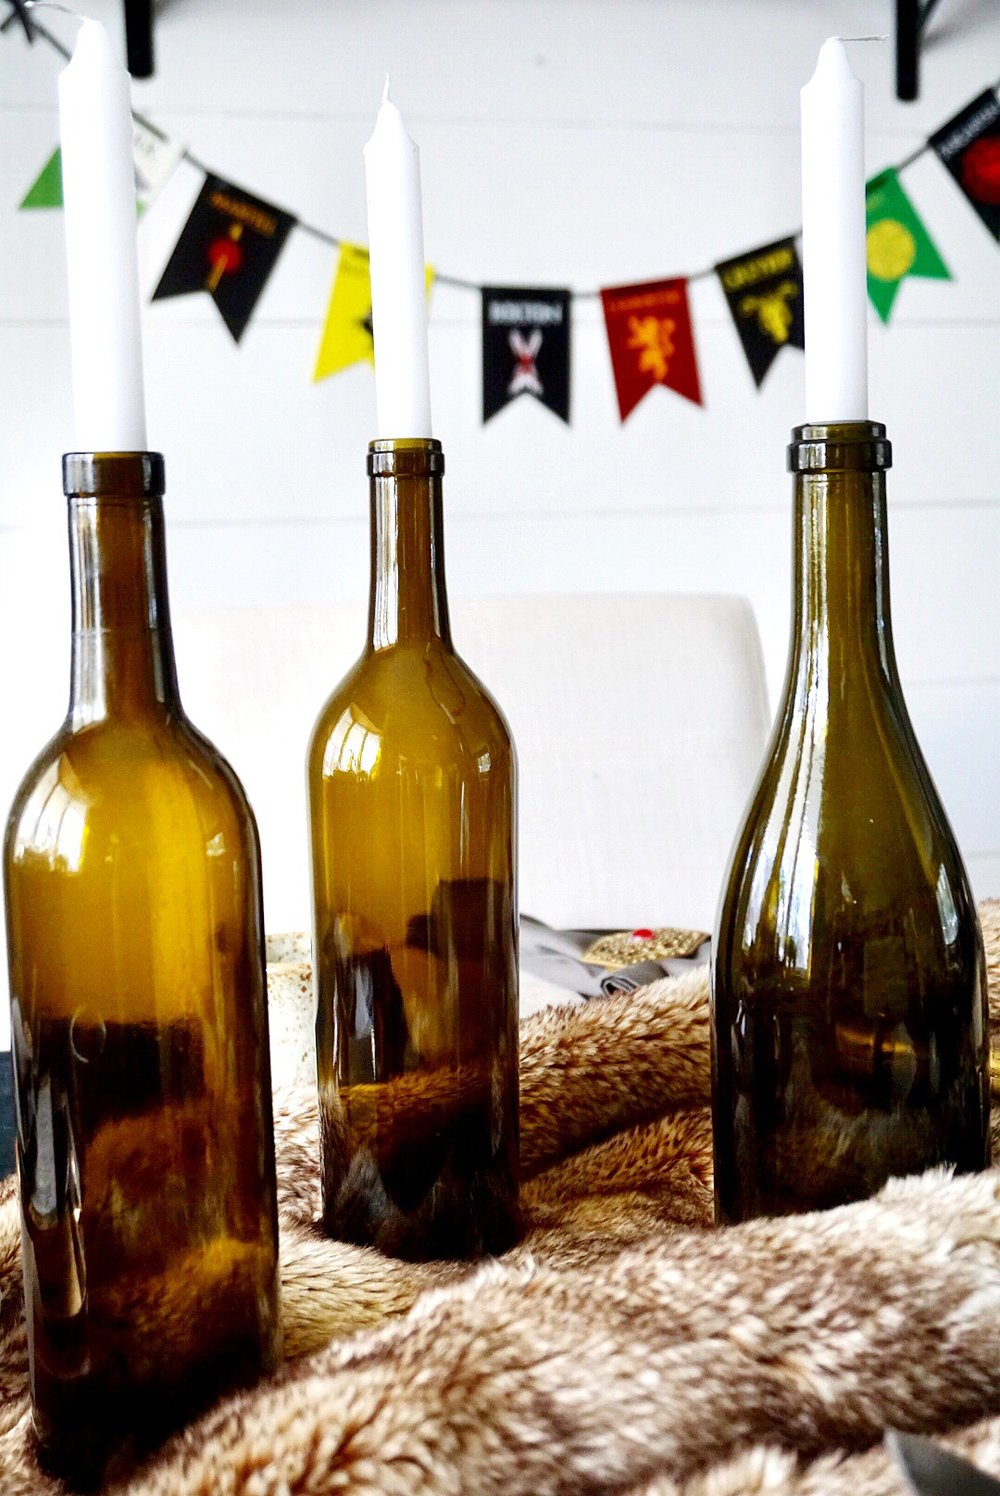 Empty wine bottles with candlesticks make a great centerpiece for a Game of Thrones watch party.